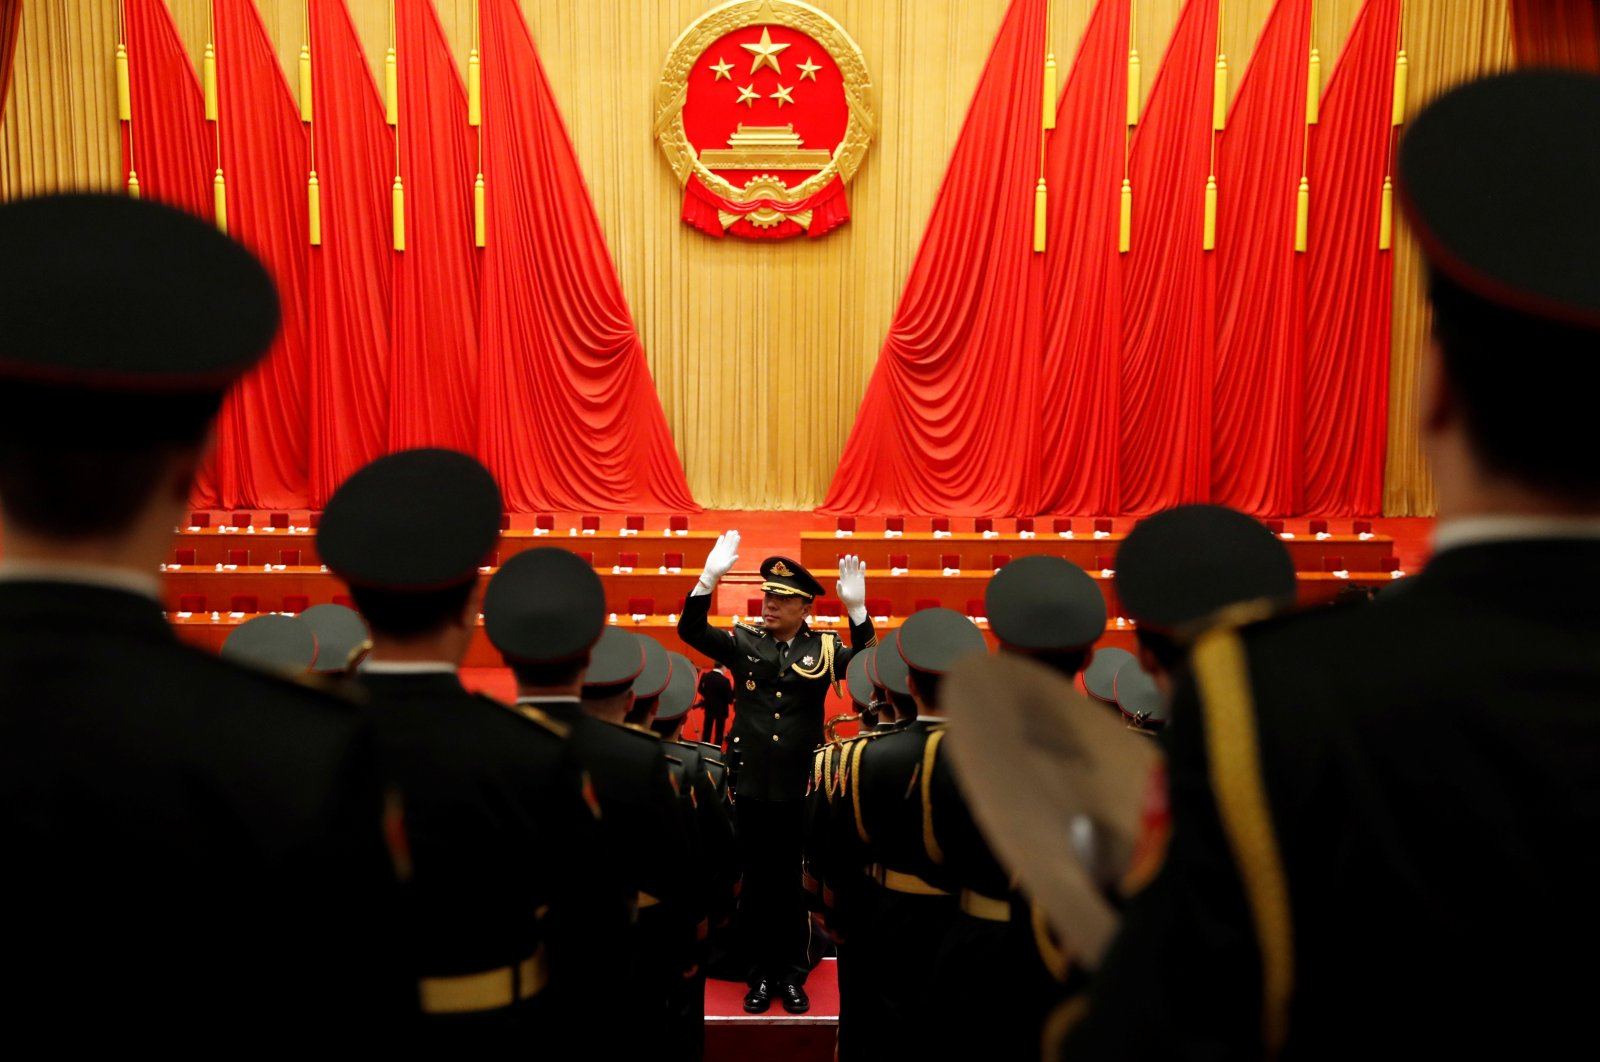 Military band members rehearse before the meeting to commend role models in China's fight against the coronavirus outbreak, at the Great Hall of the People in Beijing, China, Sept. 8, 2020. (Reuters Photo)